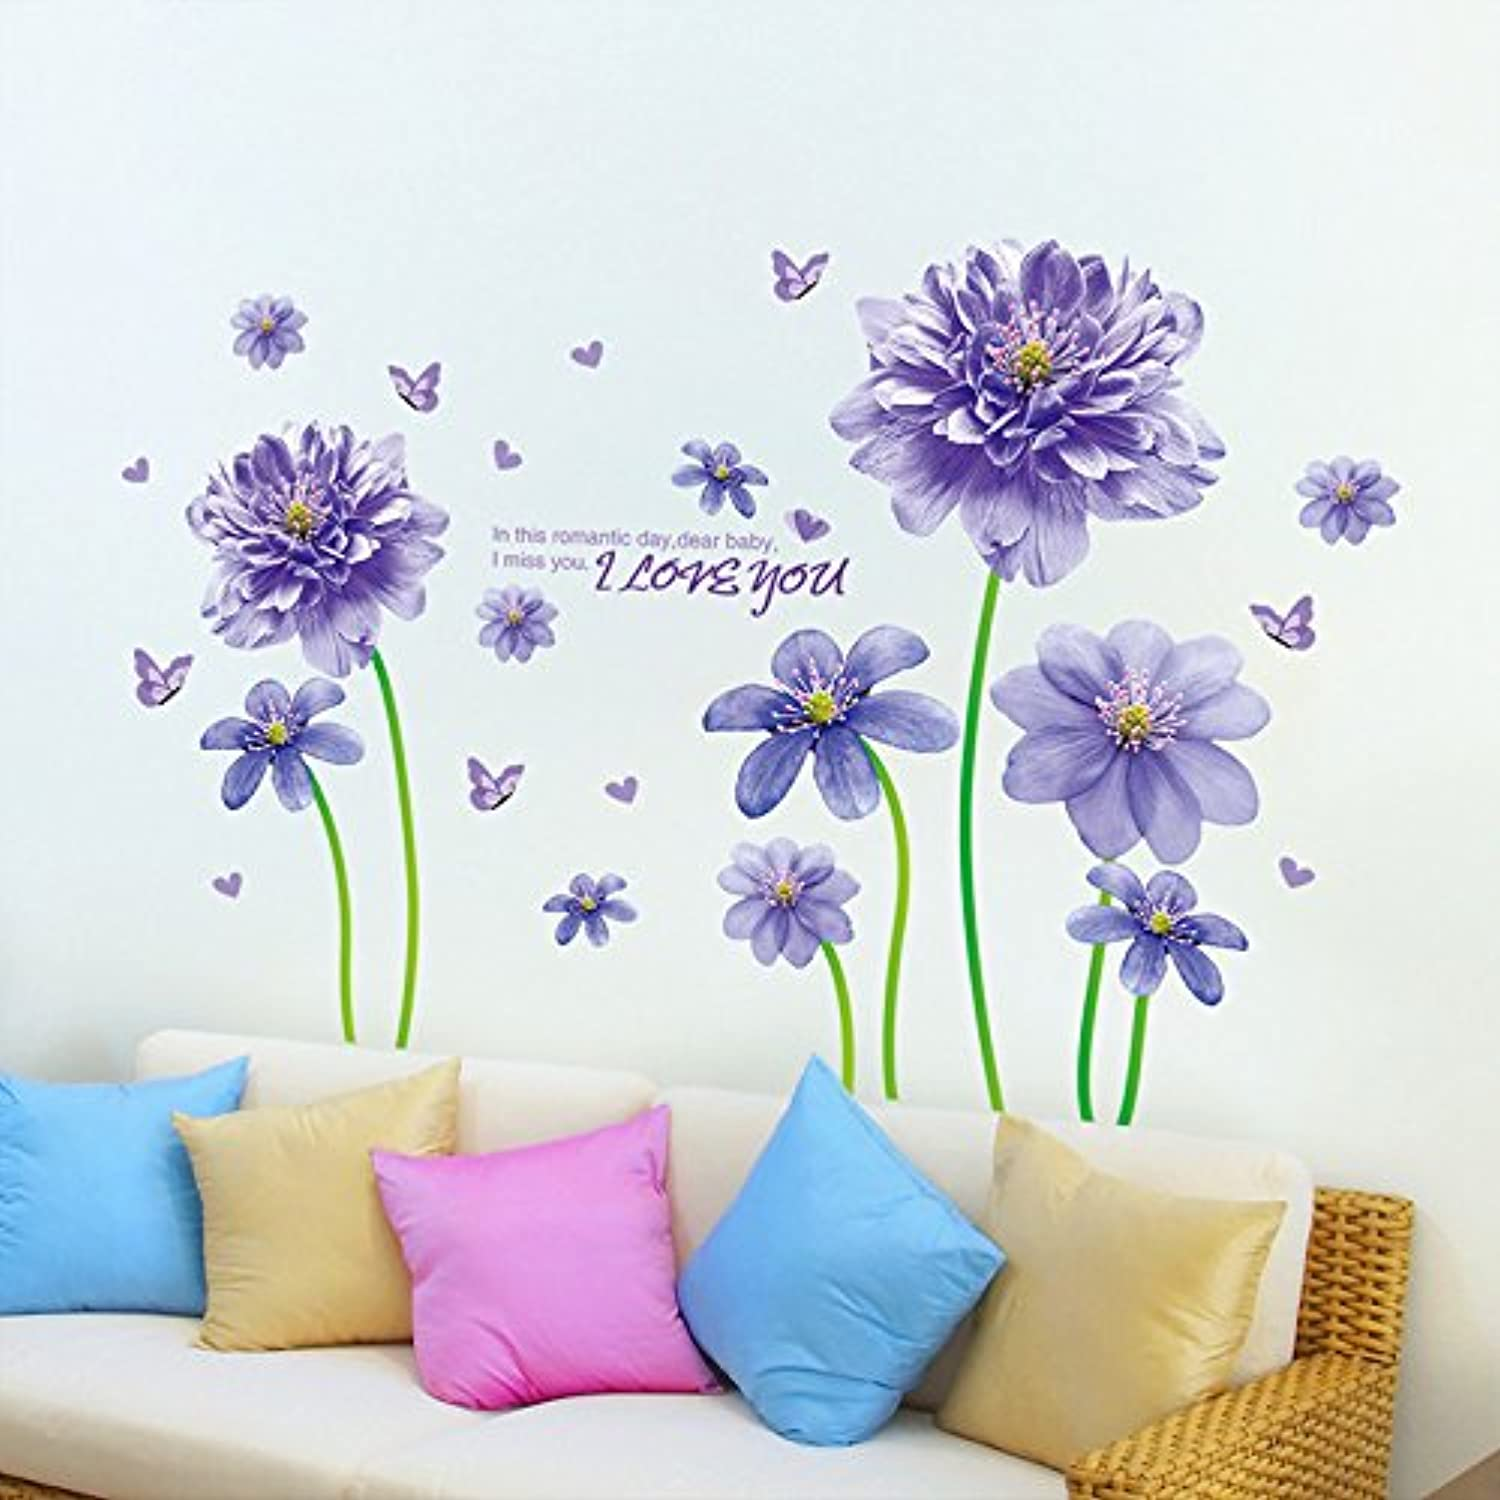 Znzbzt Purple Goblin Flower Posters Wall Sticker Creative Modern Wall Decor Wall Sticker